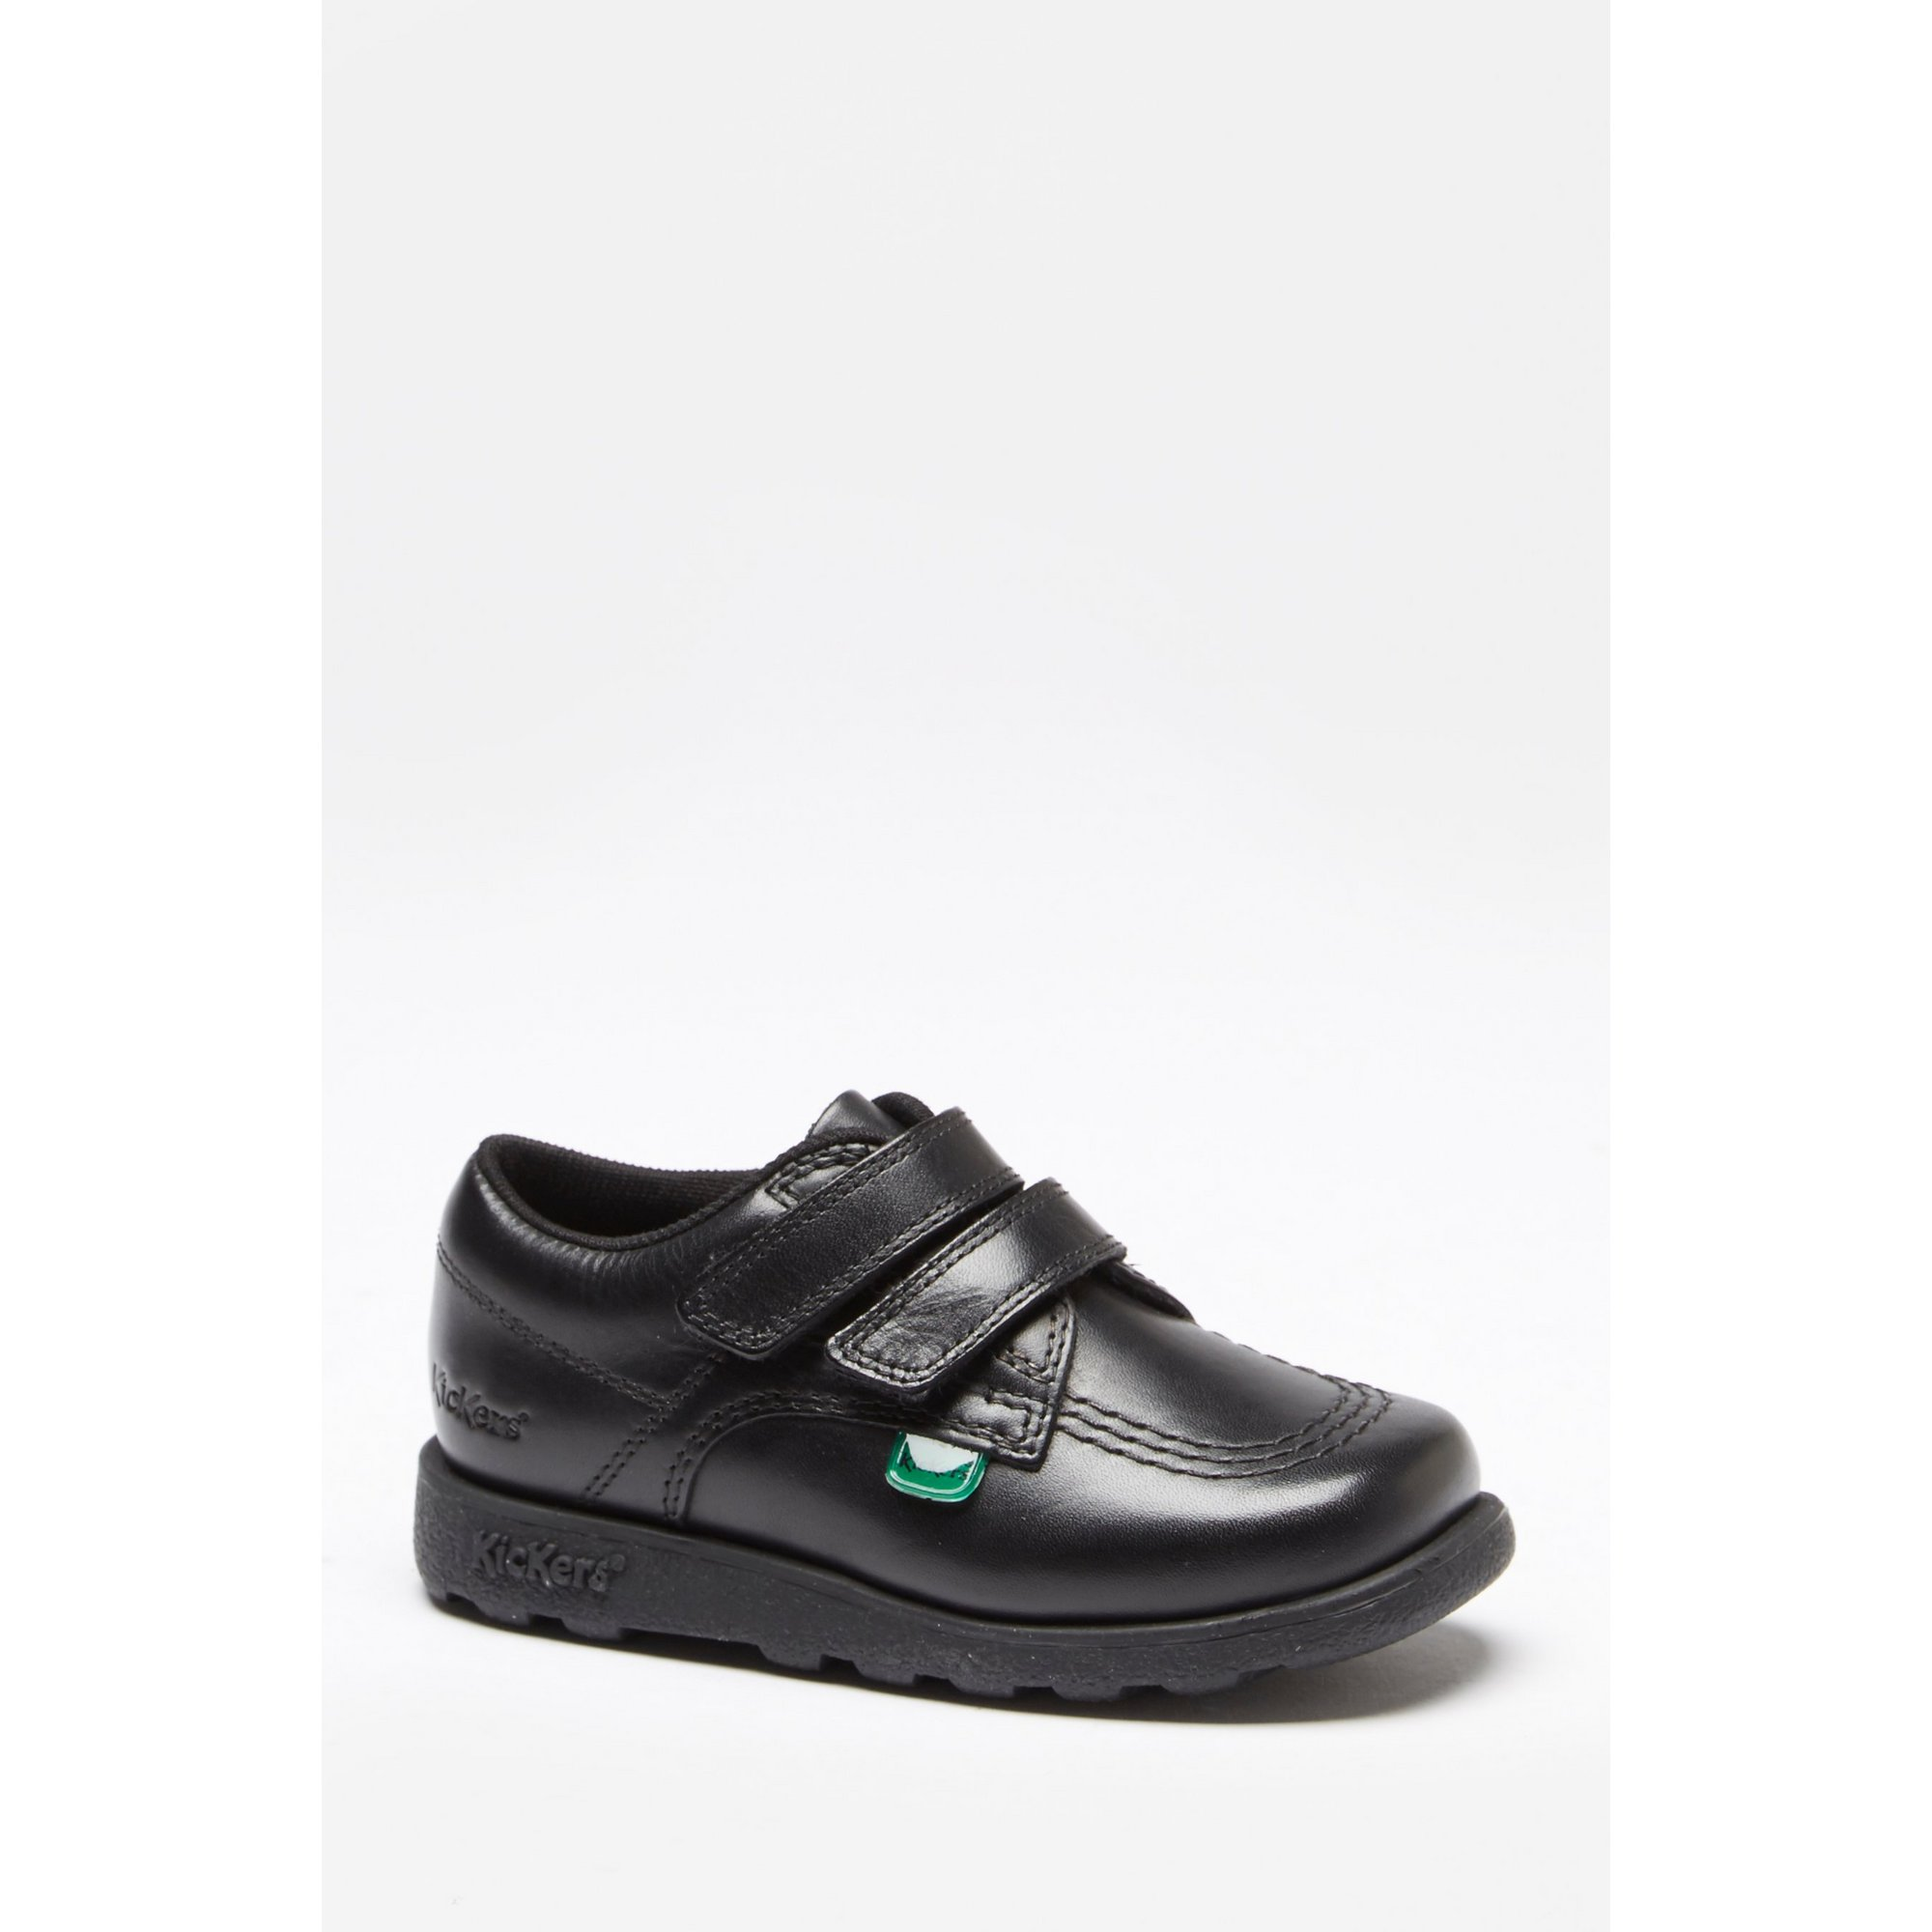 Image of Boys Kickers Fragma Double Strap Shoes